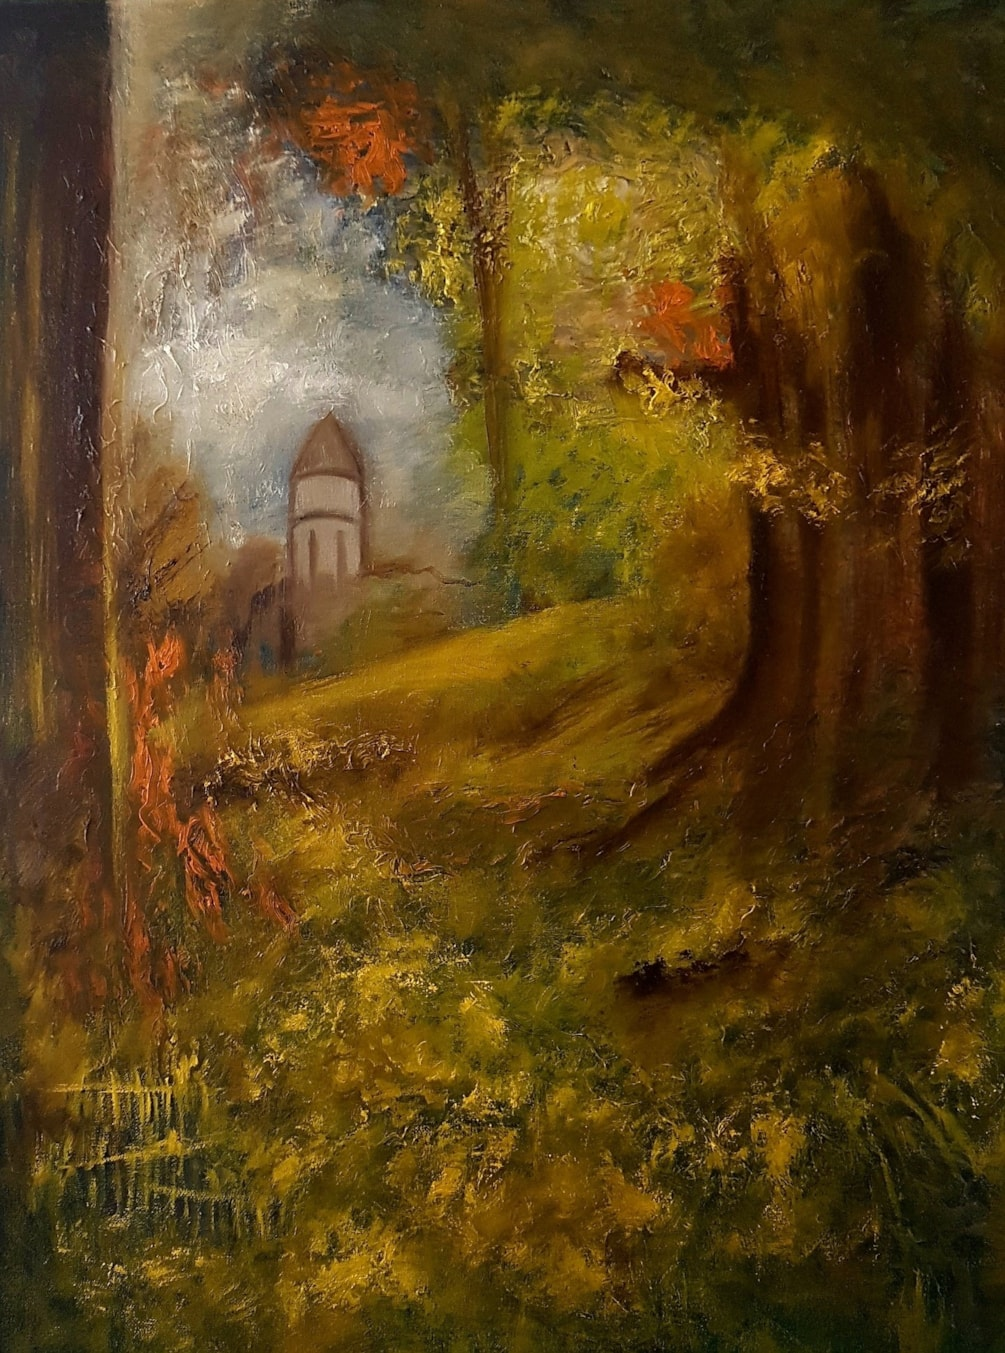 Chapel through the forest